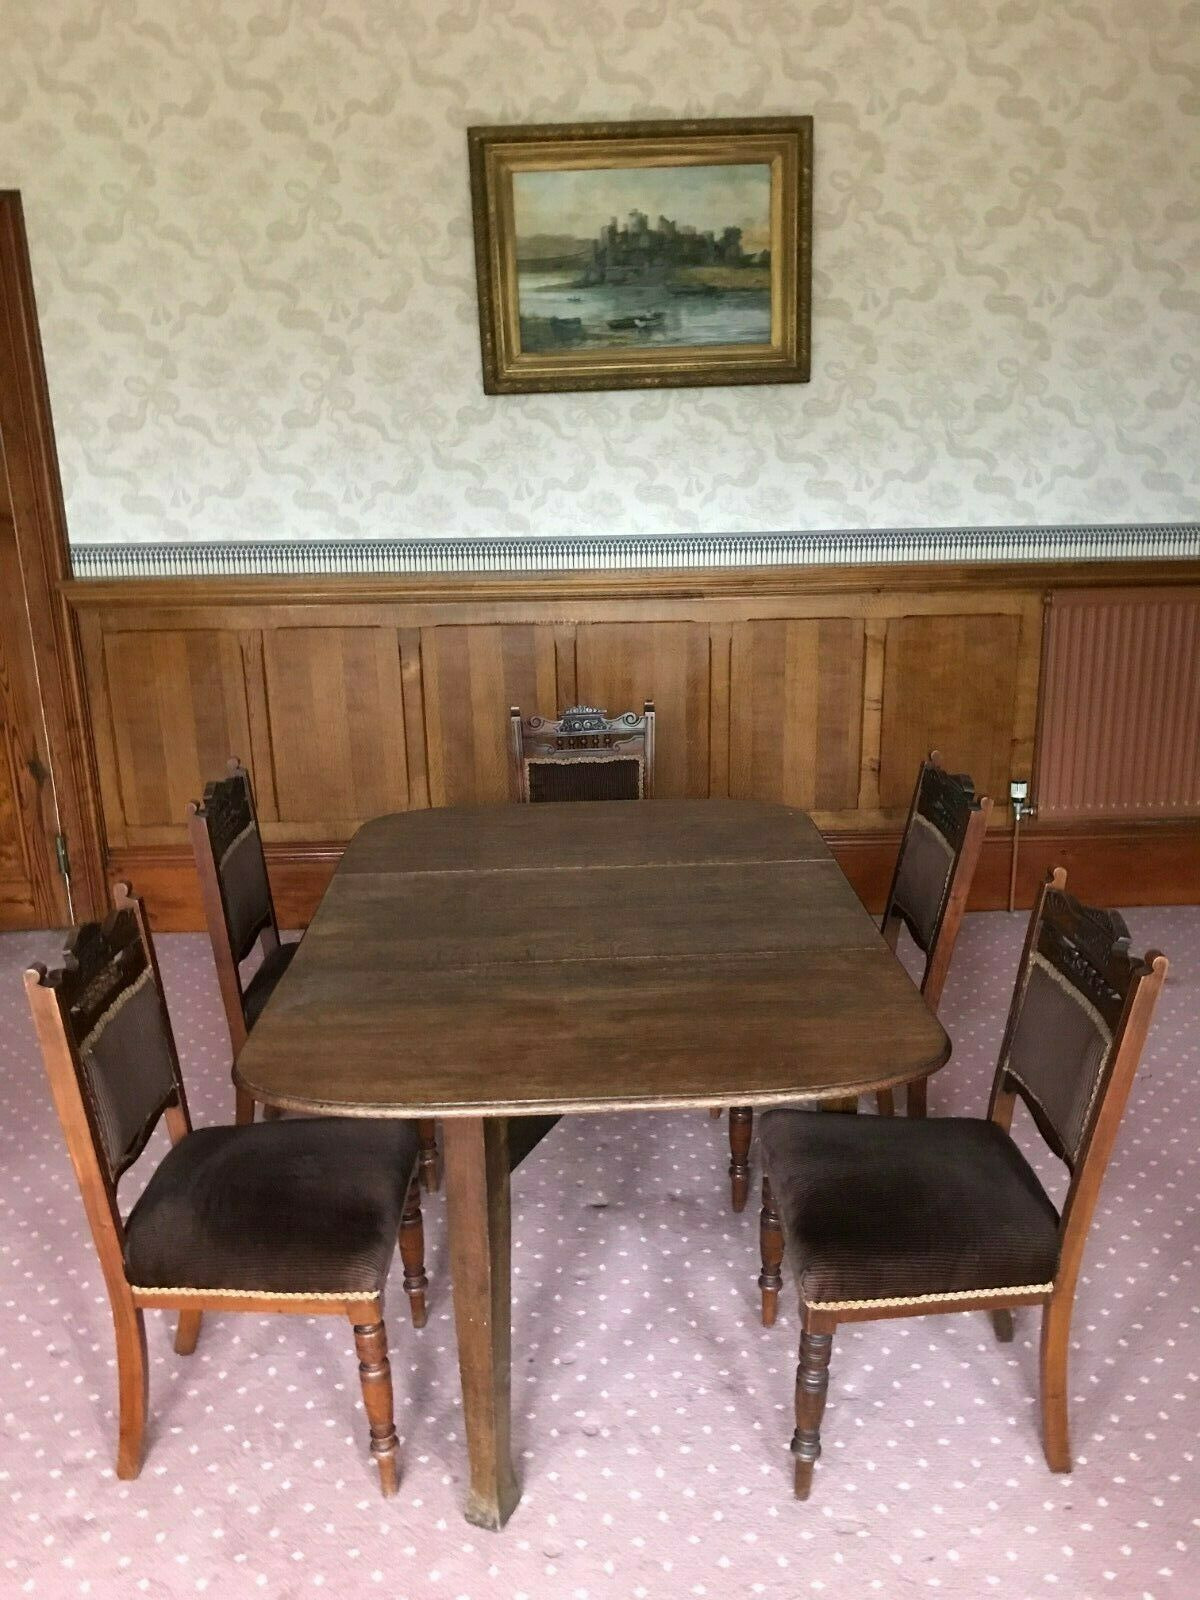 c 1900 antique victorian vintage solid oak kitchen dining table seats 4 people